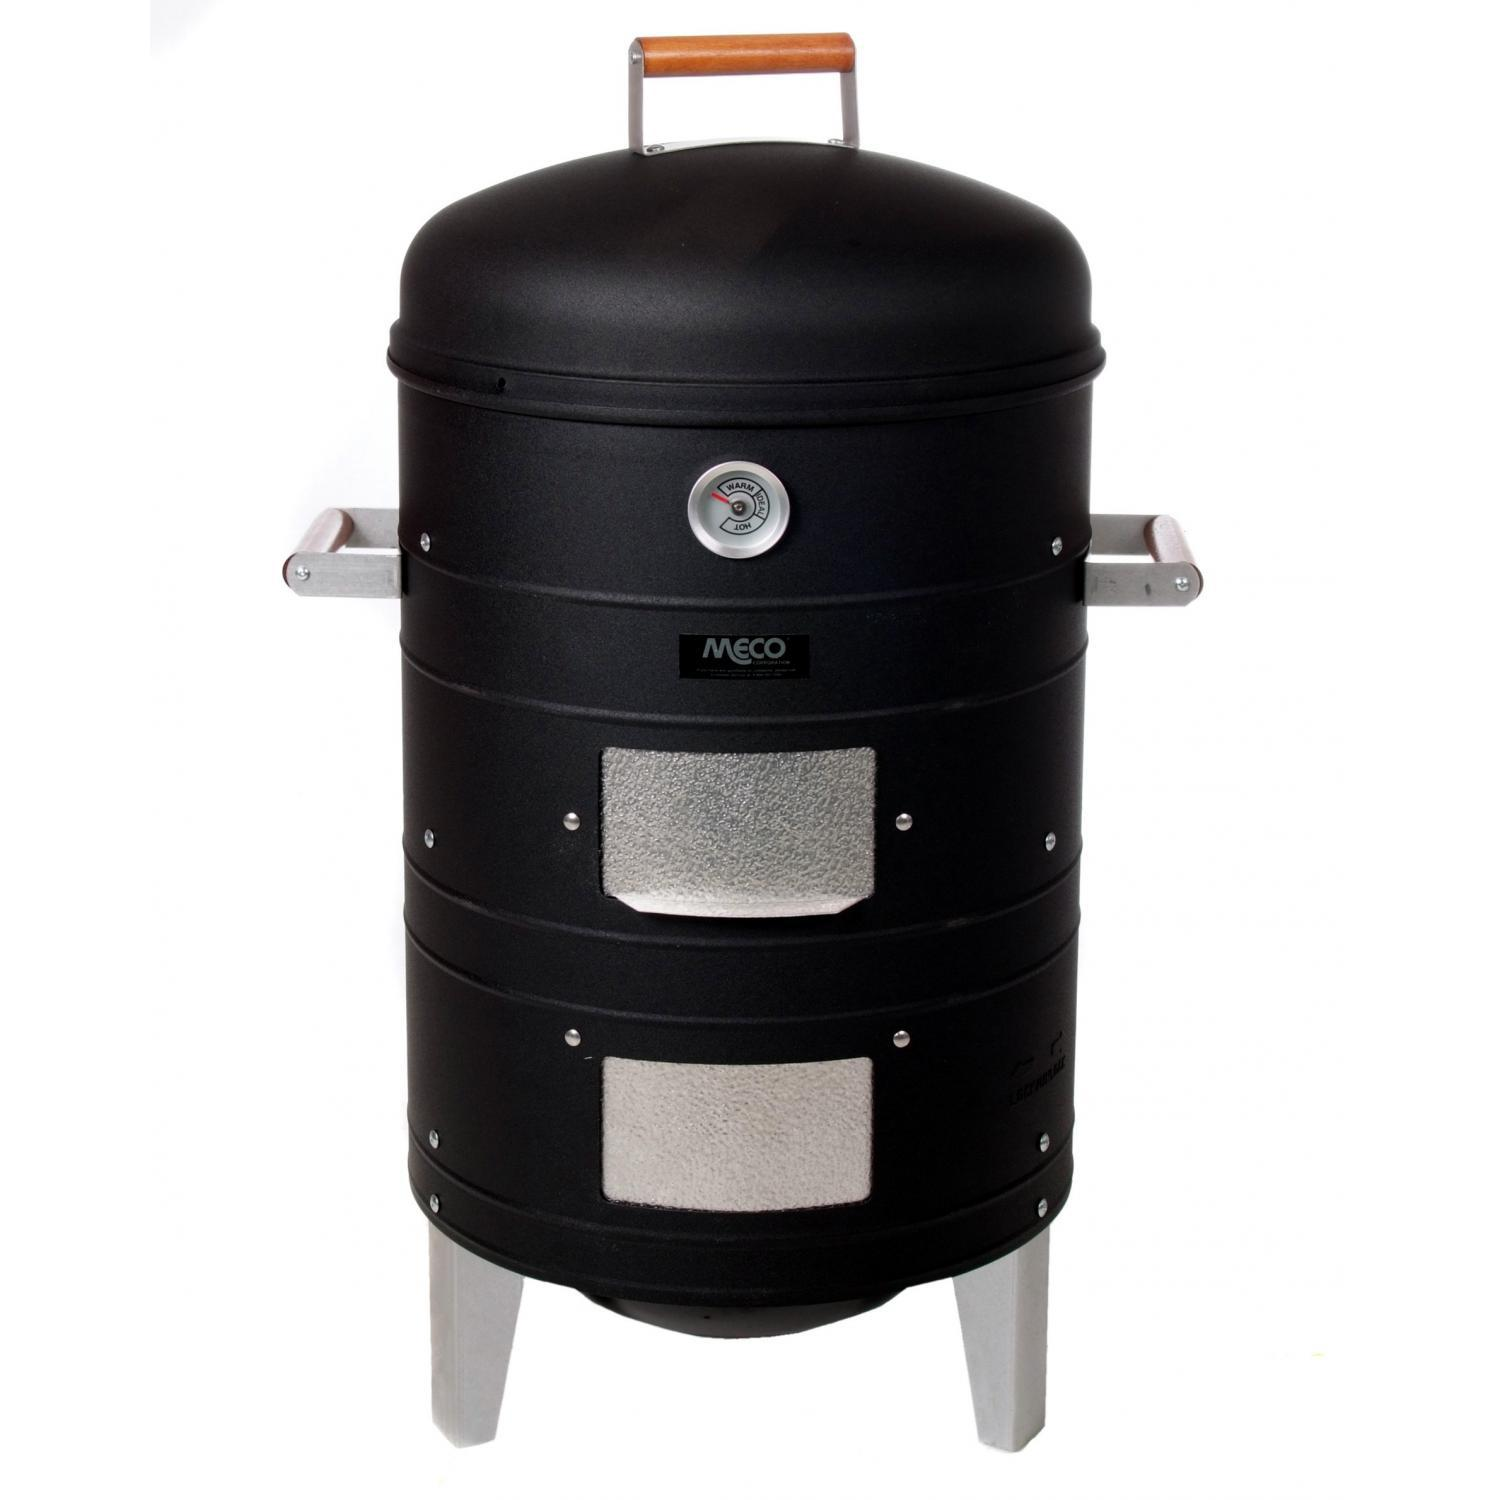 Meco Charcoal Water Vertical BBQ Meat Smoker - Black - 5023I - 5023I4.181